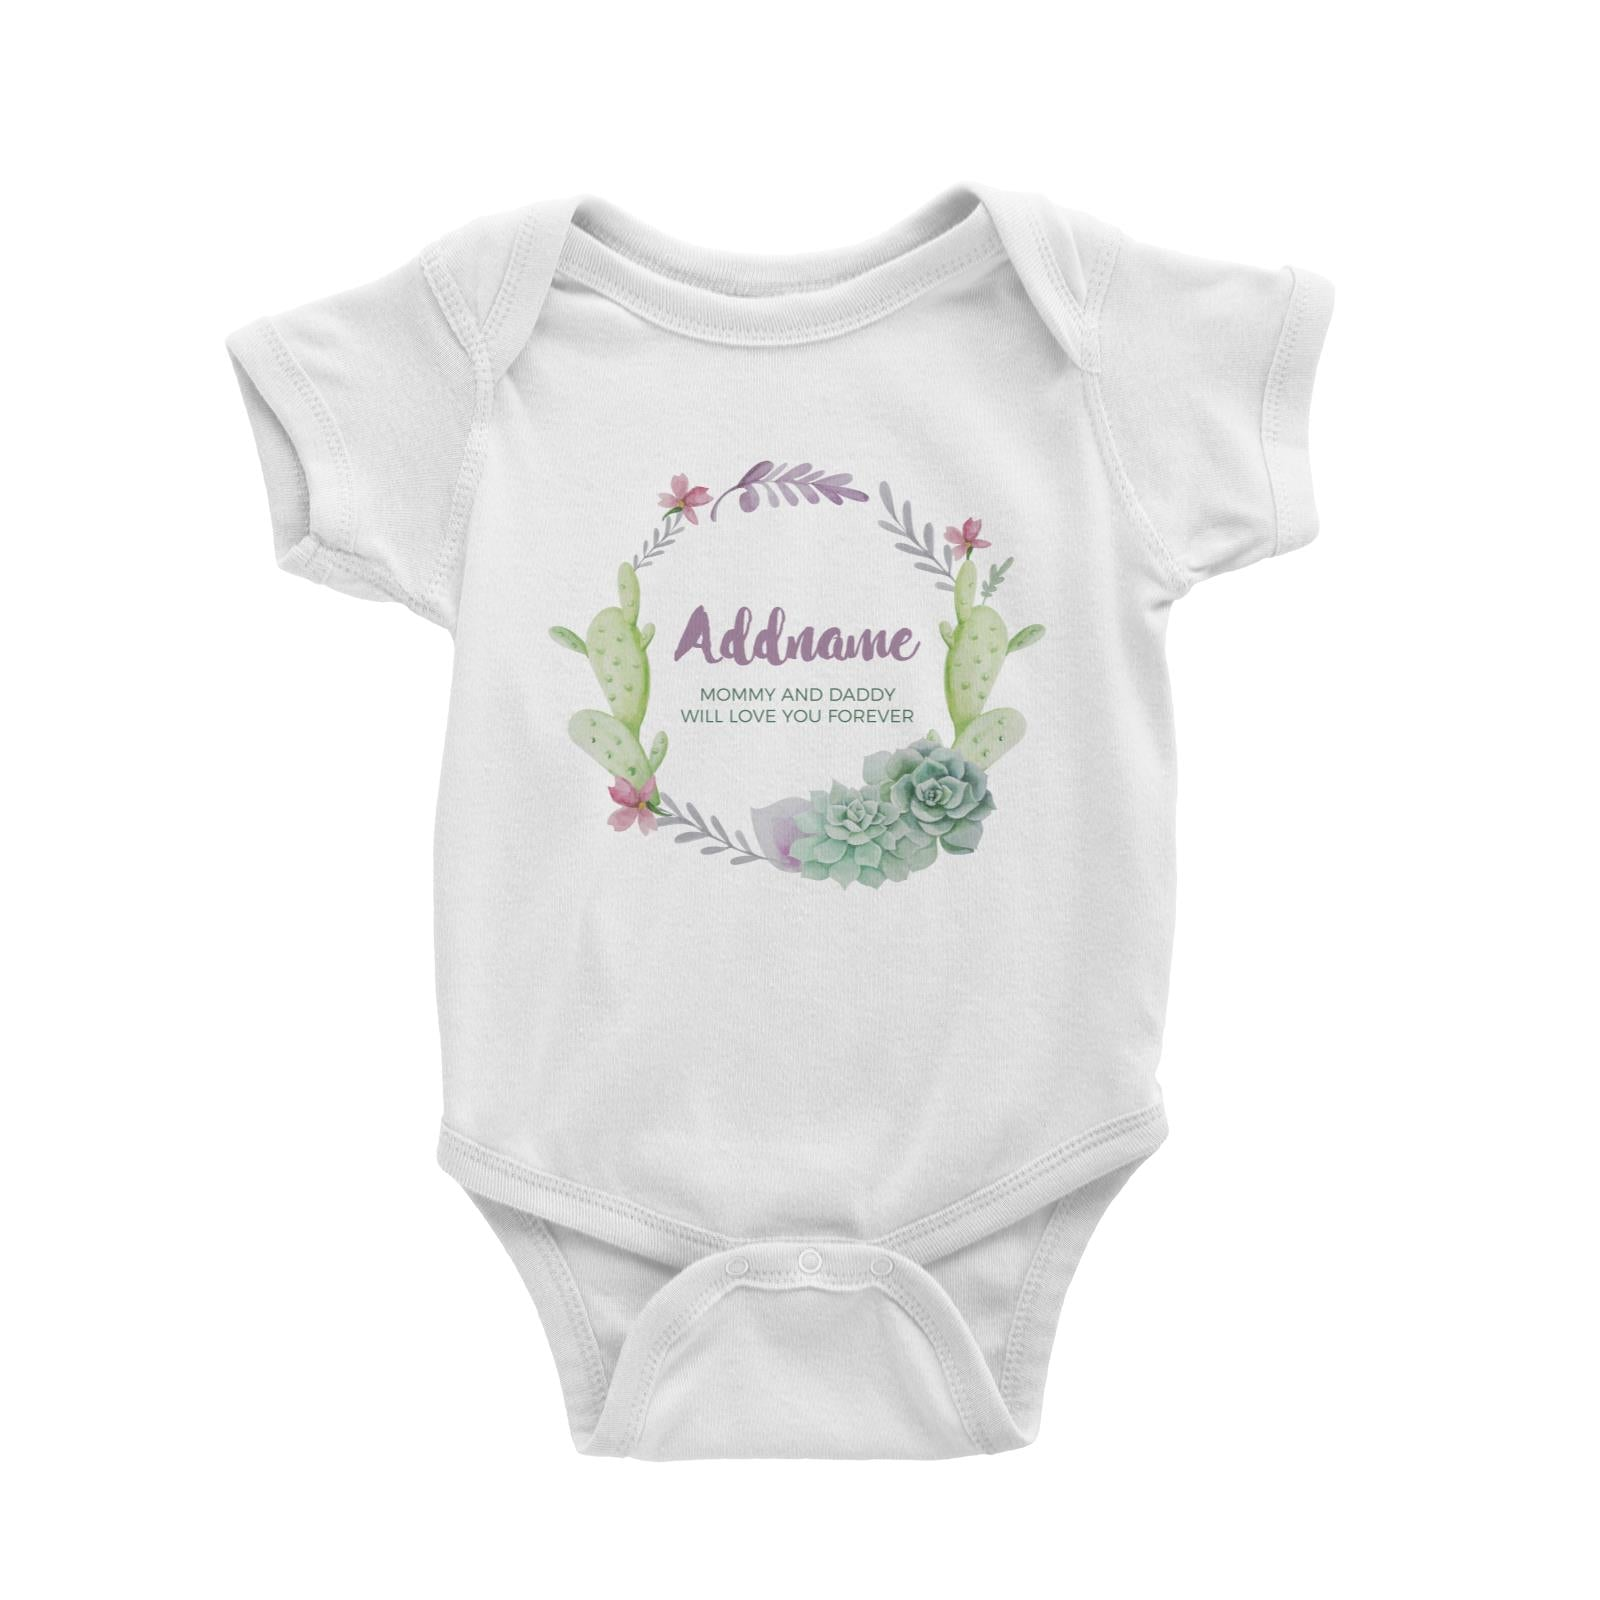 Succulent Wreath Personalizable with Name and Text Baby Romper